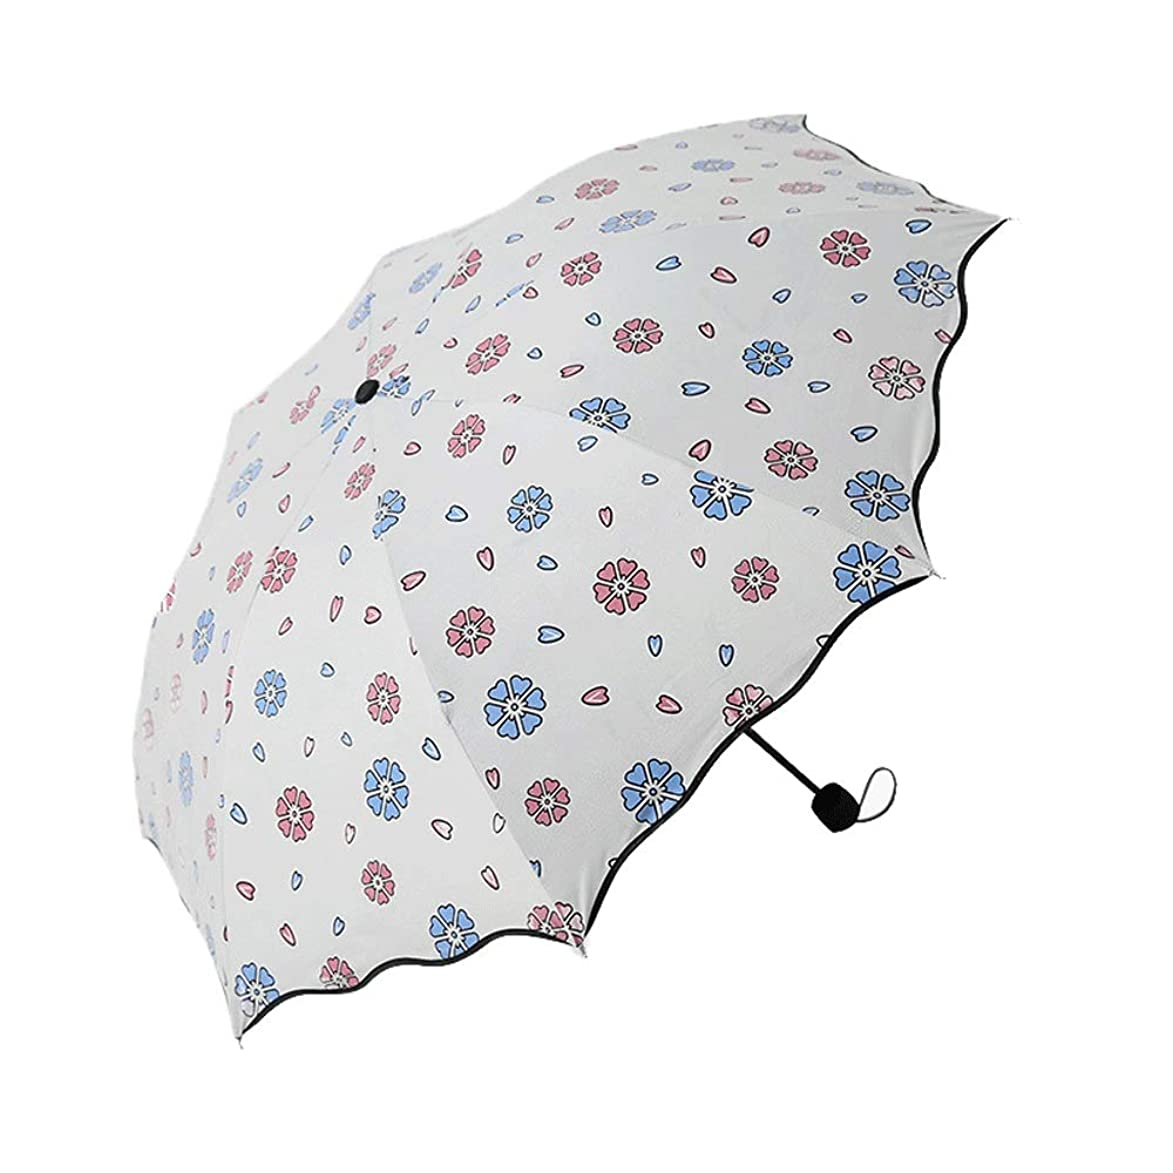 Creative Windproof Sun Protection Umbrella, Portable Lightweight Outdoor Golf Umbrella,Strengthen The Portable Windproof Frame for Men and Women (Color : White)